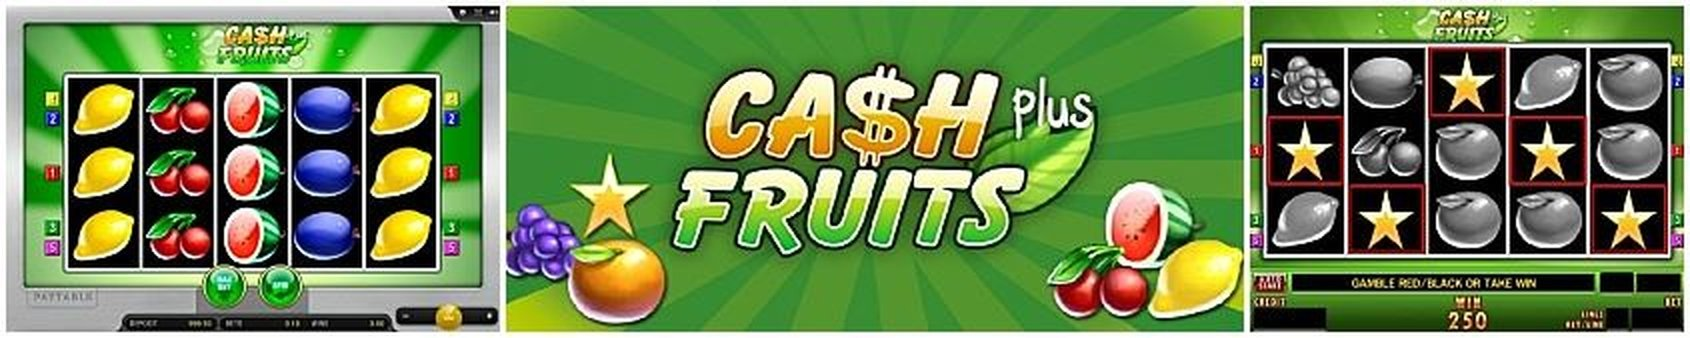 The Cash Fruits Plus (Merkur) Online Slot Demo Game by Merkur Gaming